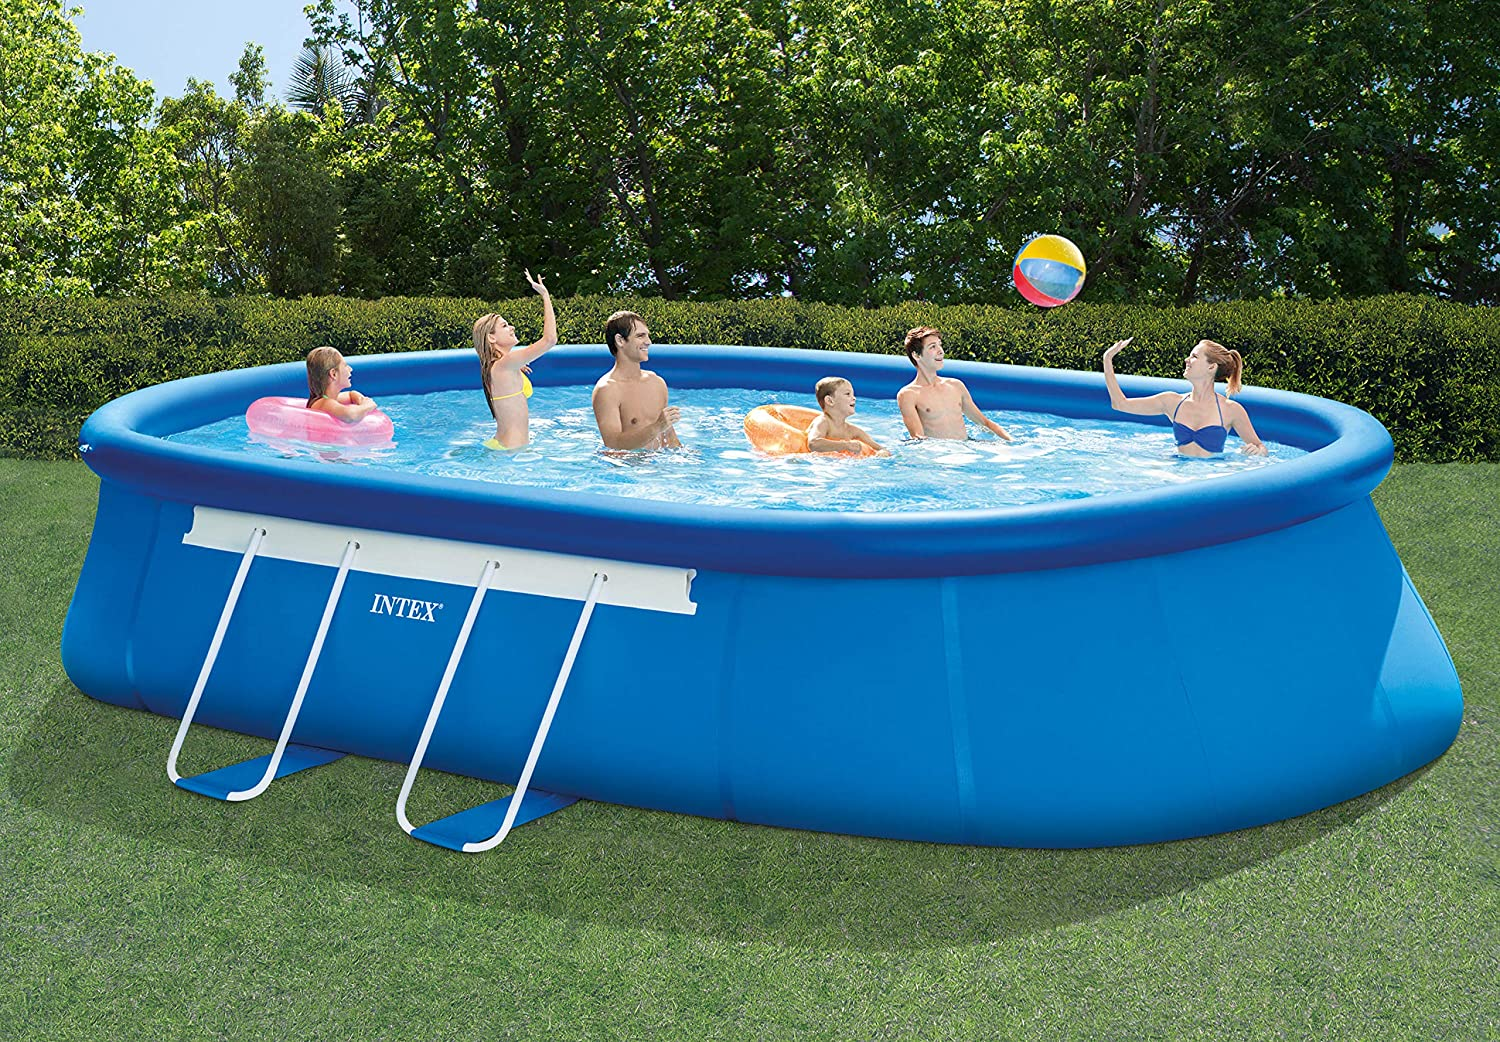 Intex Frame Pool Set - Piscina, Azul, 610 x 366 x 122 cm: Amazon ...